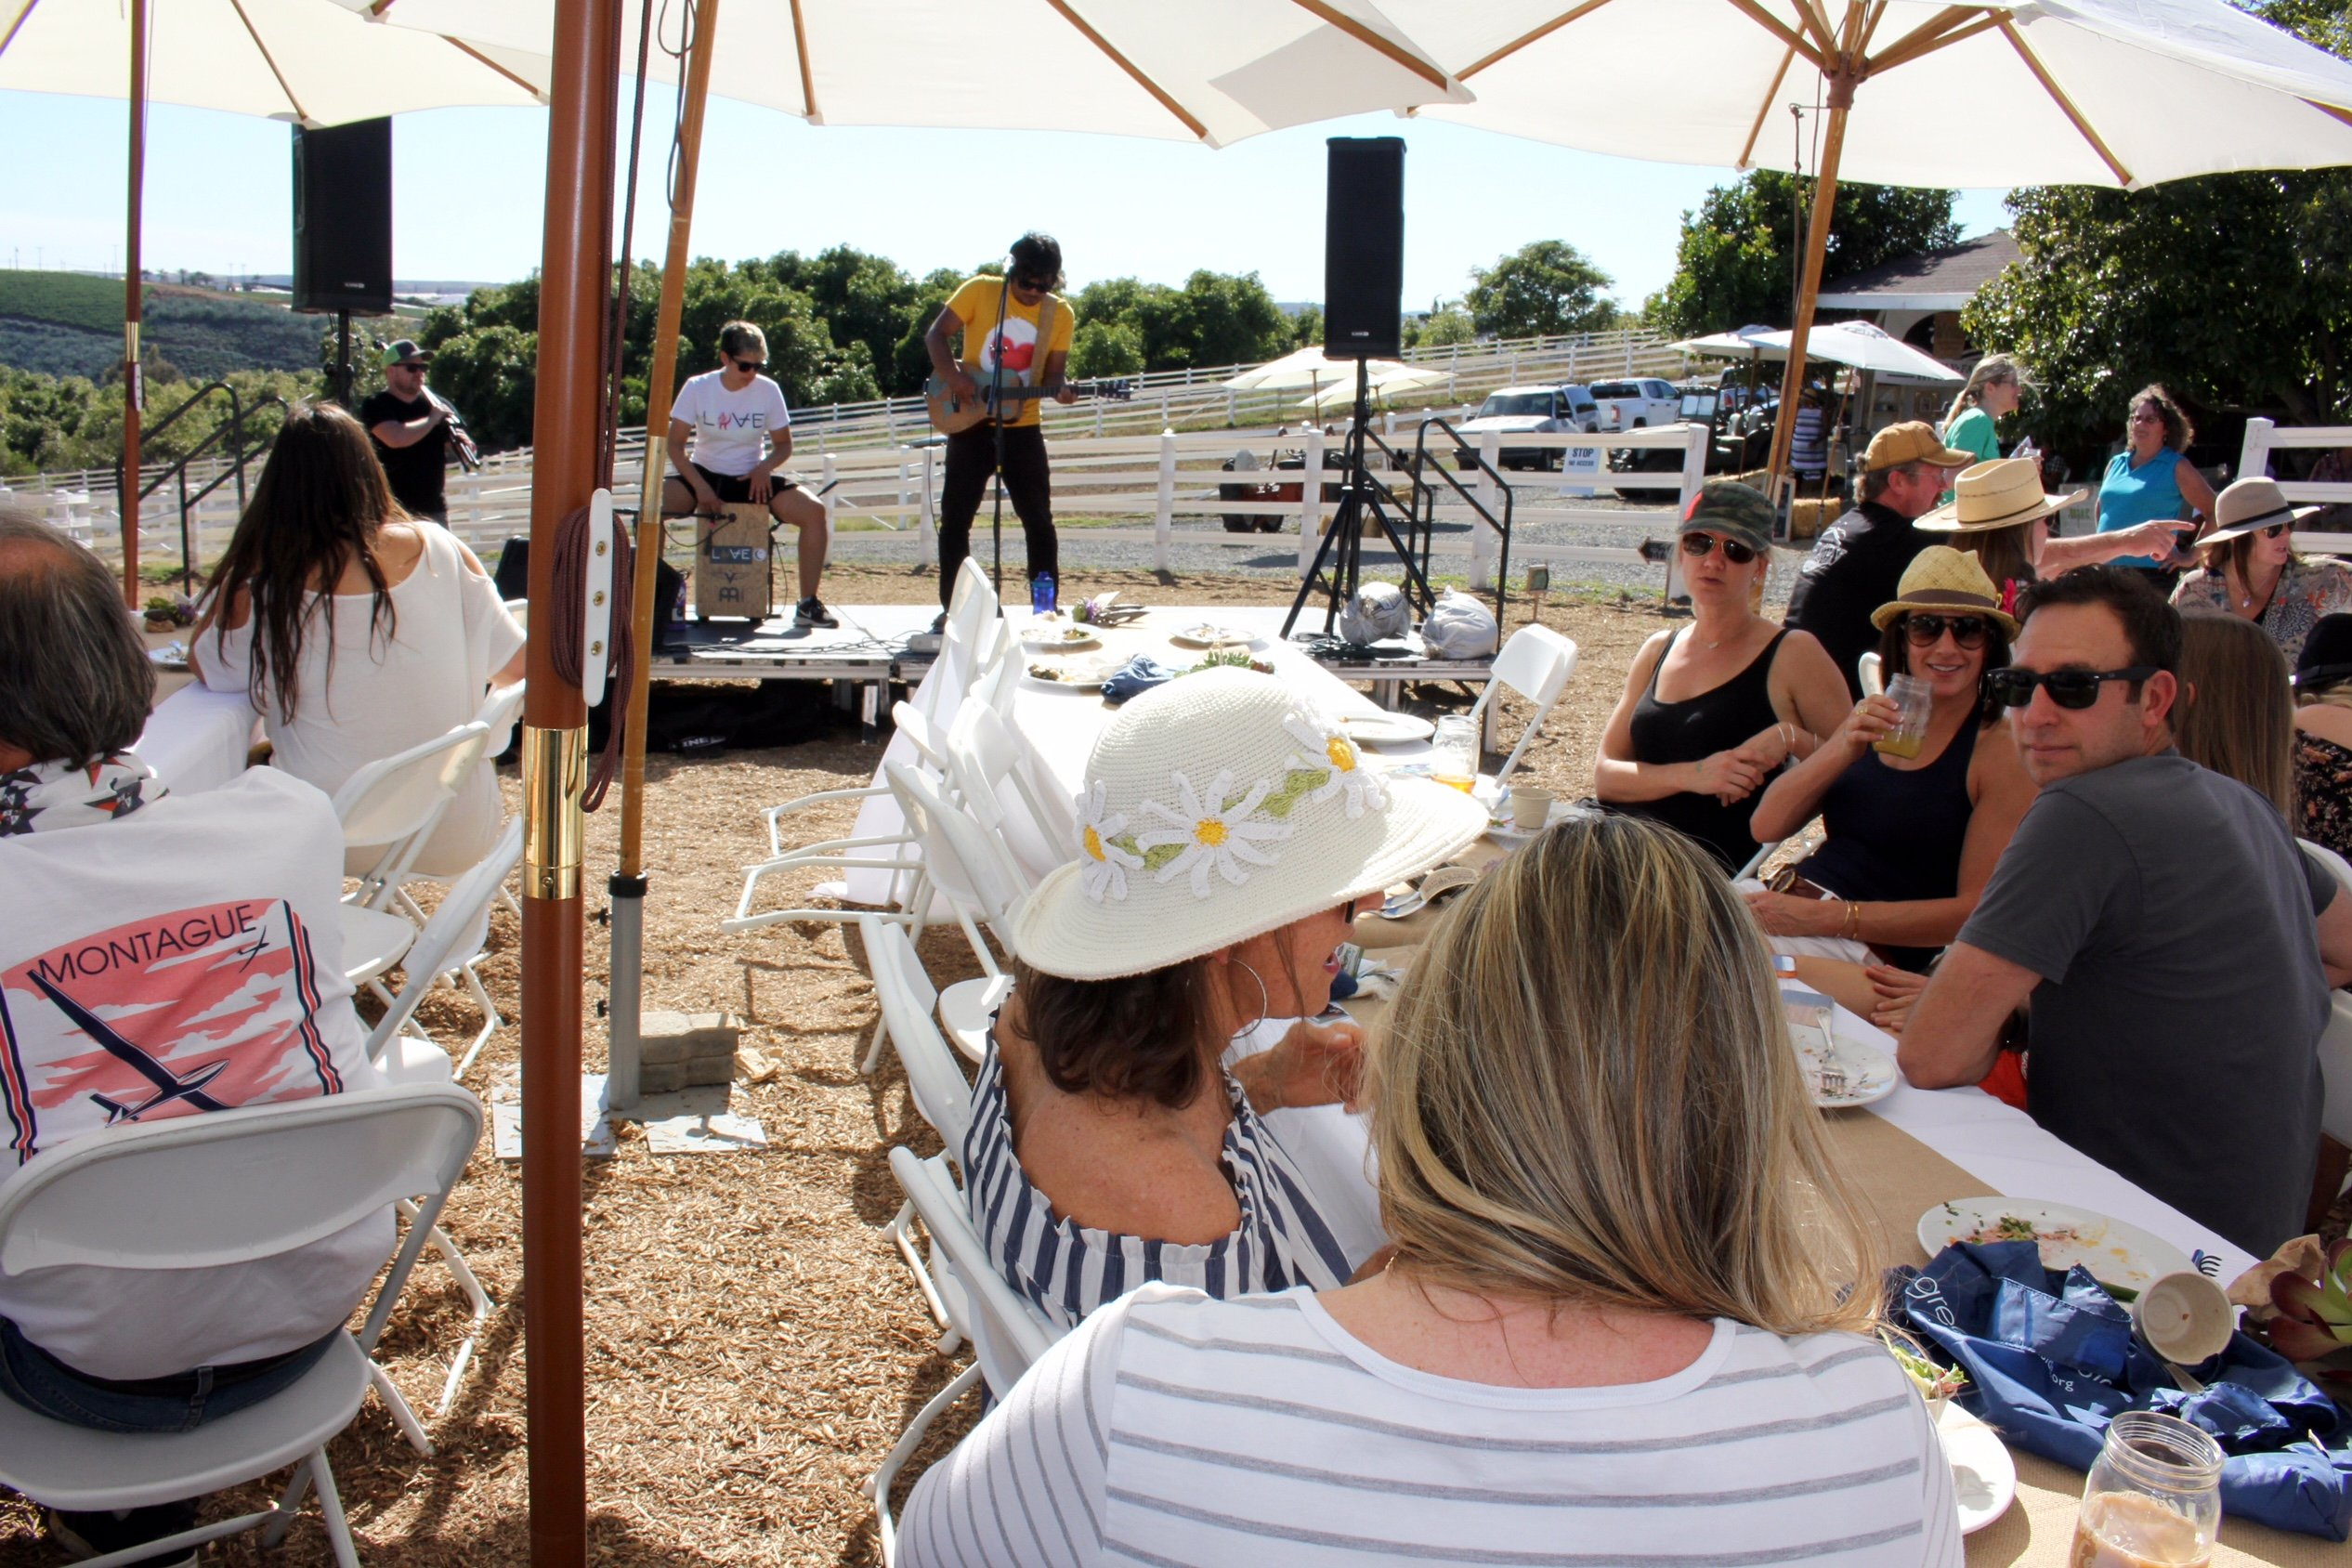 Ticketed guests enjoyed sips, tastes, live music and a view of rolling farmland.